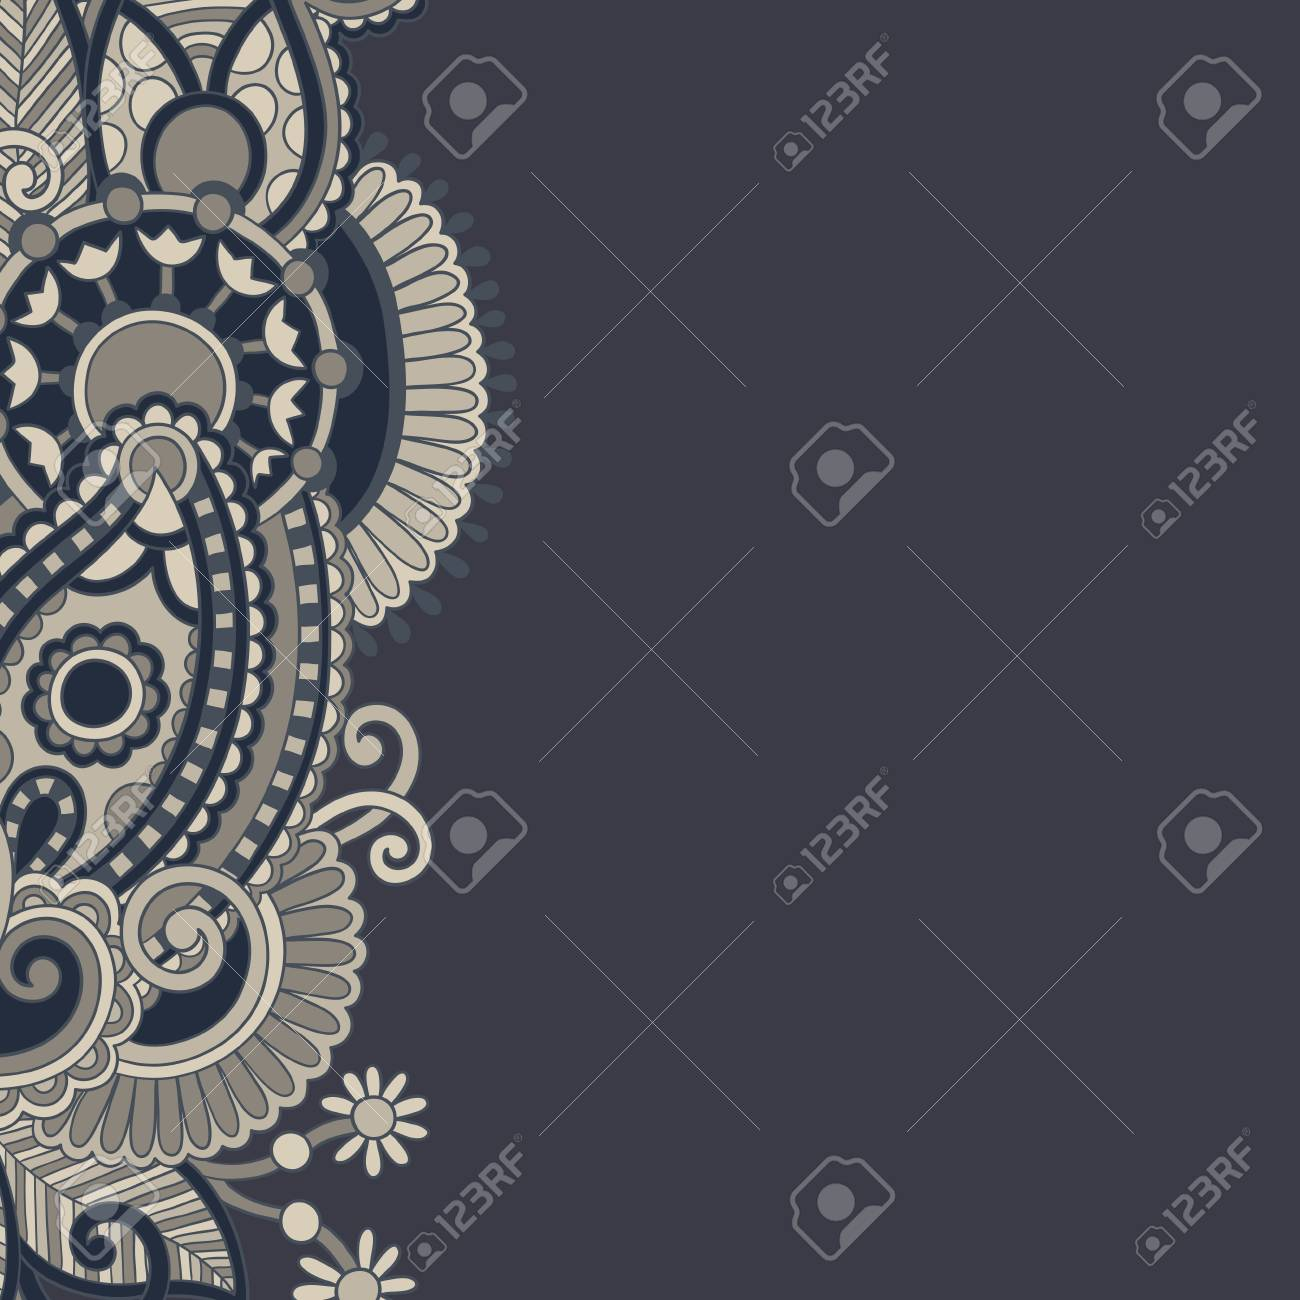 ornate floral background Stock Vector - 16668805